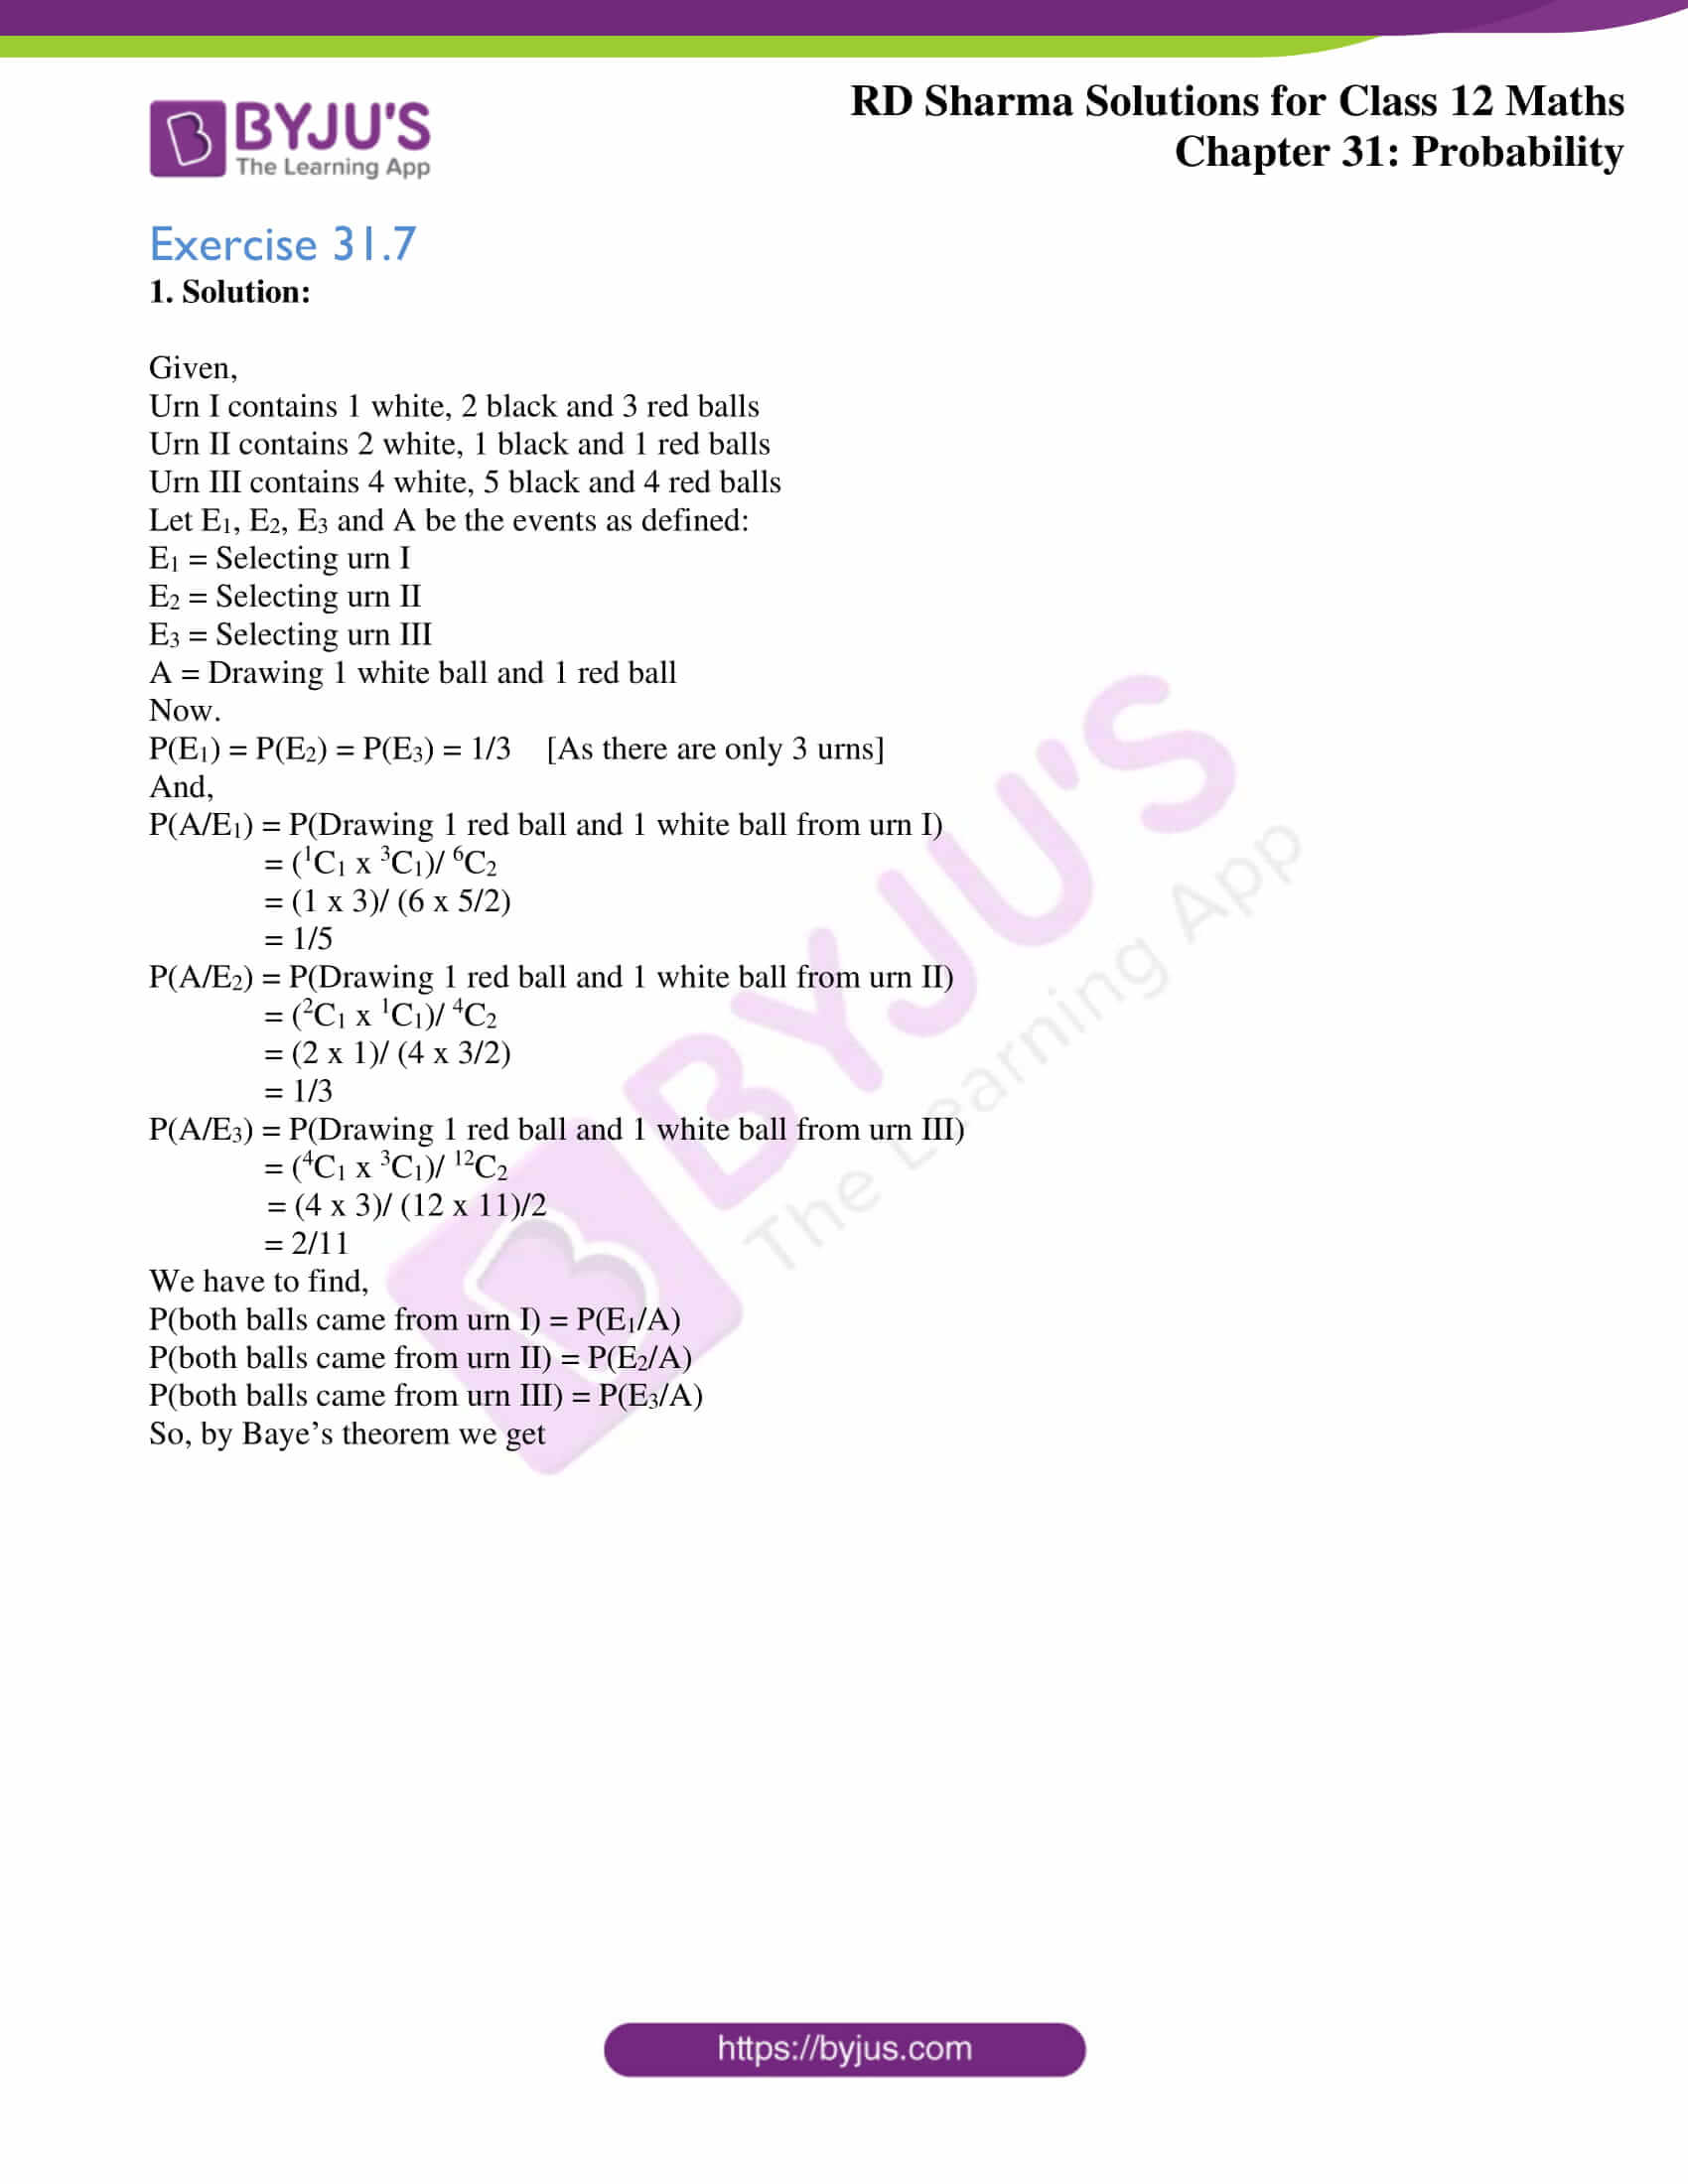 rd sharma solutions for class 12 maths chapter 31 ex 7 1